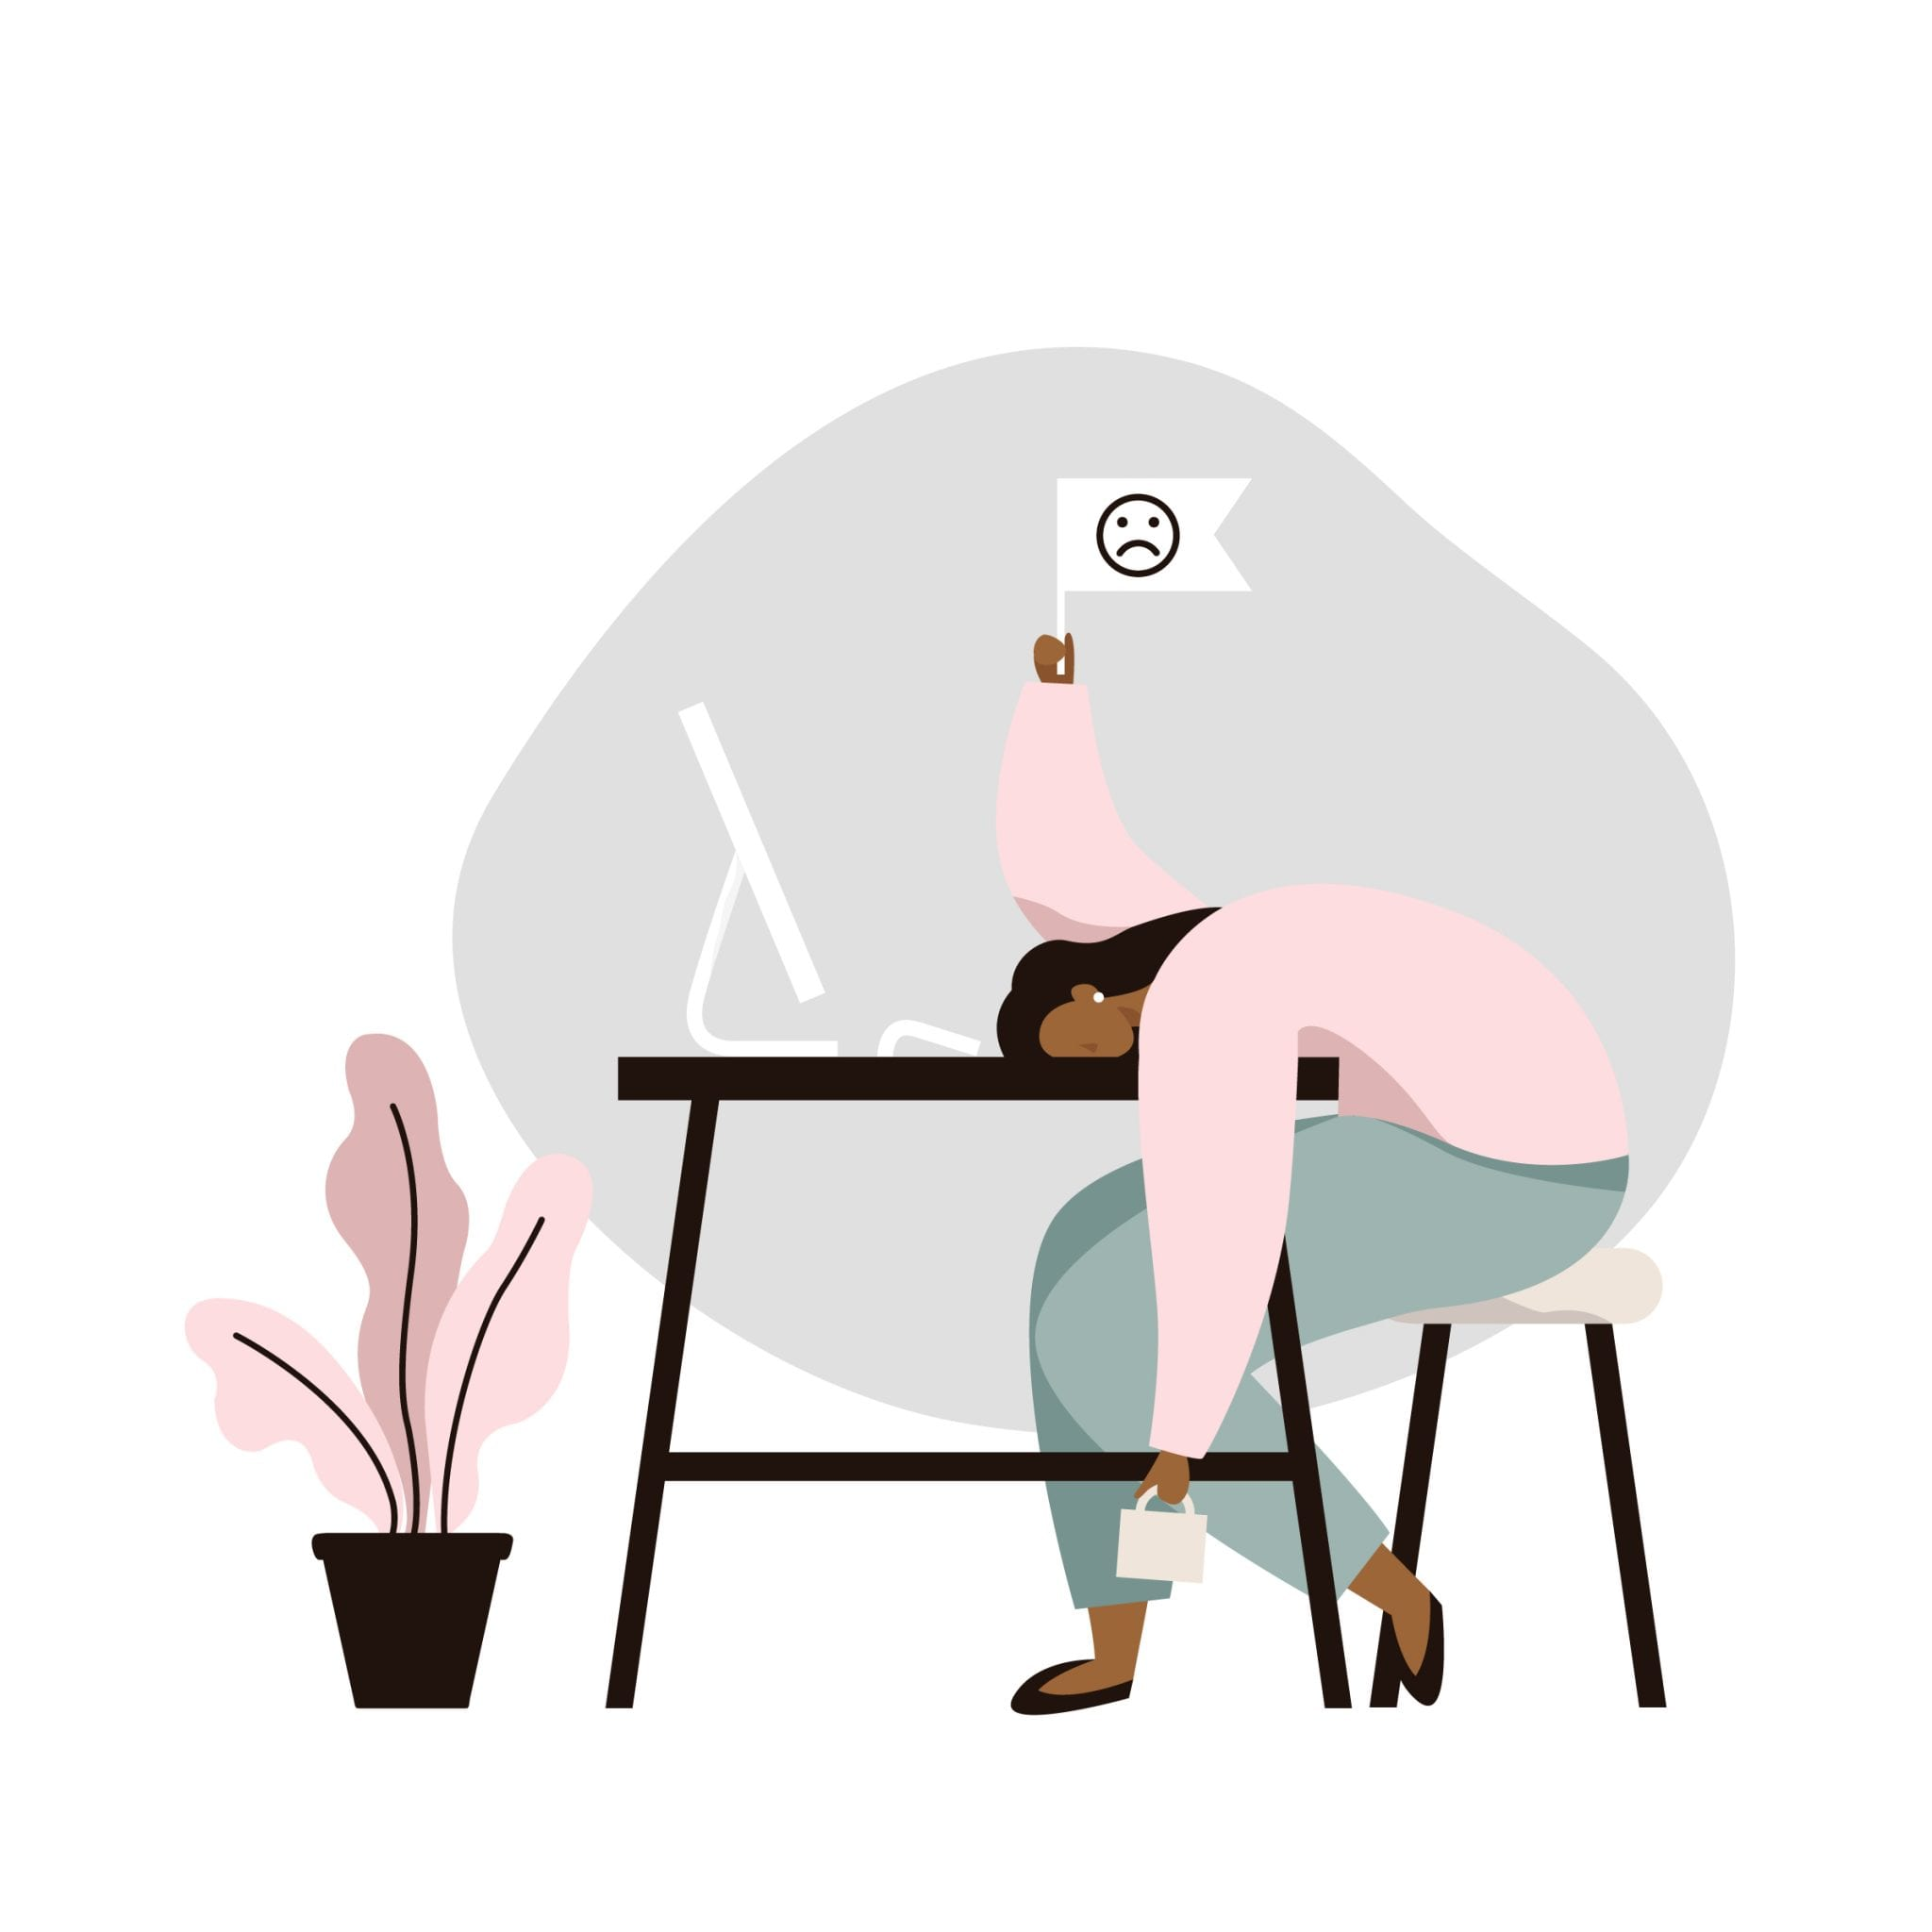 Burnout. Tired Young Woman Slumped Over a Table. Bad Day or Mental Health Problem